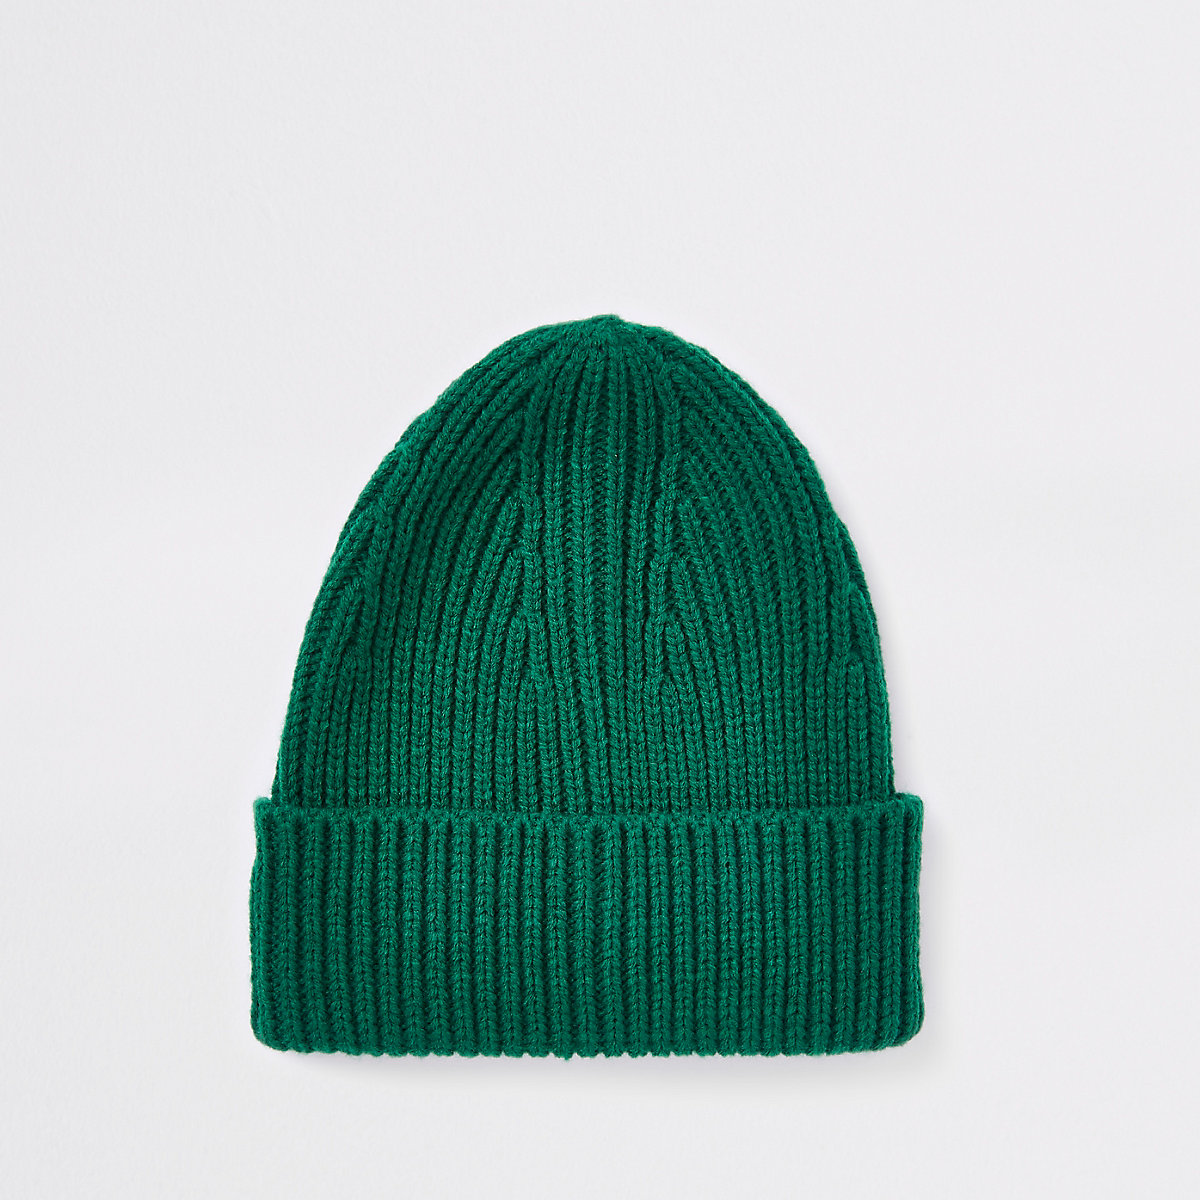 Green fisherman knit beanie hat